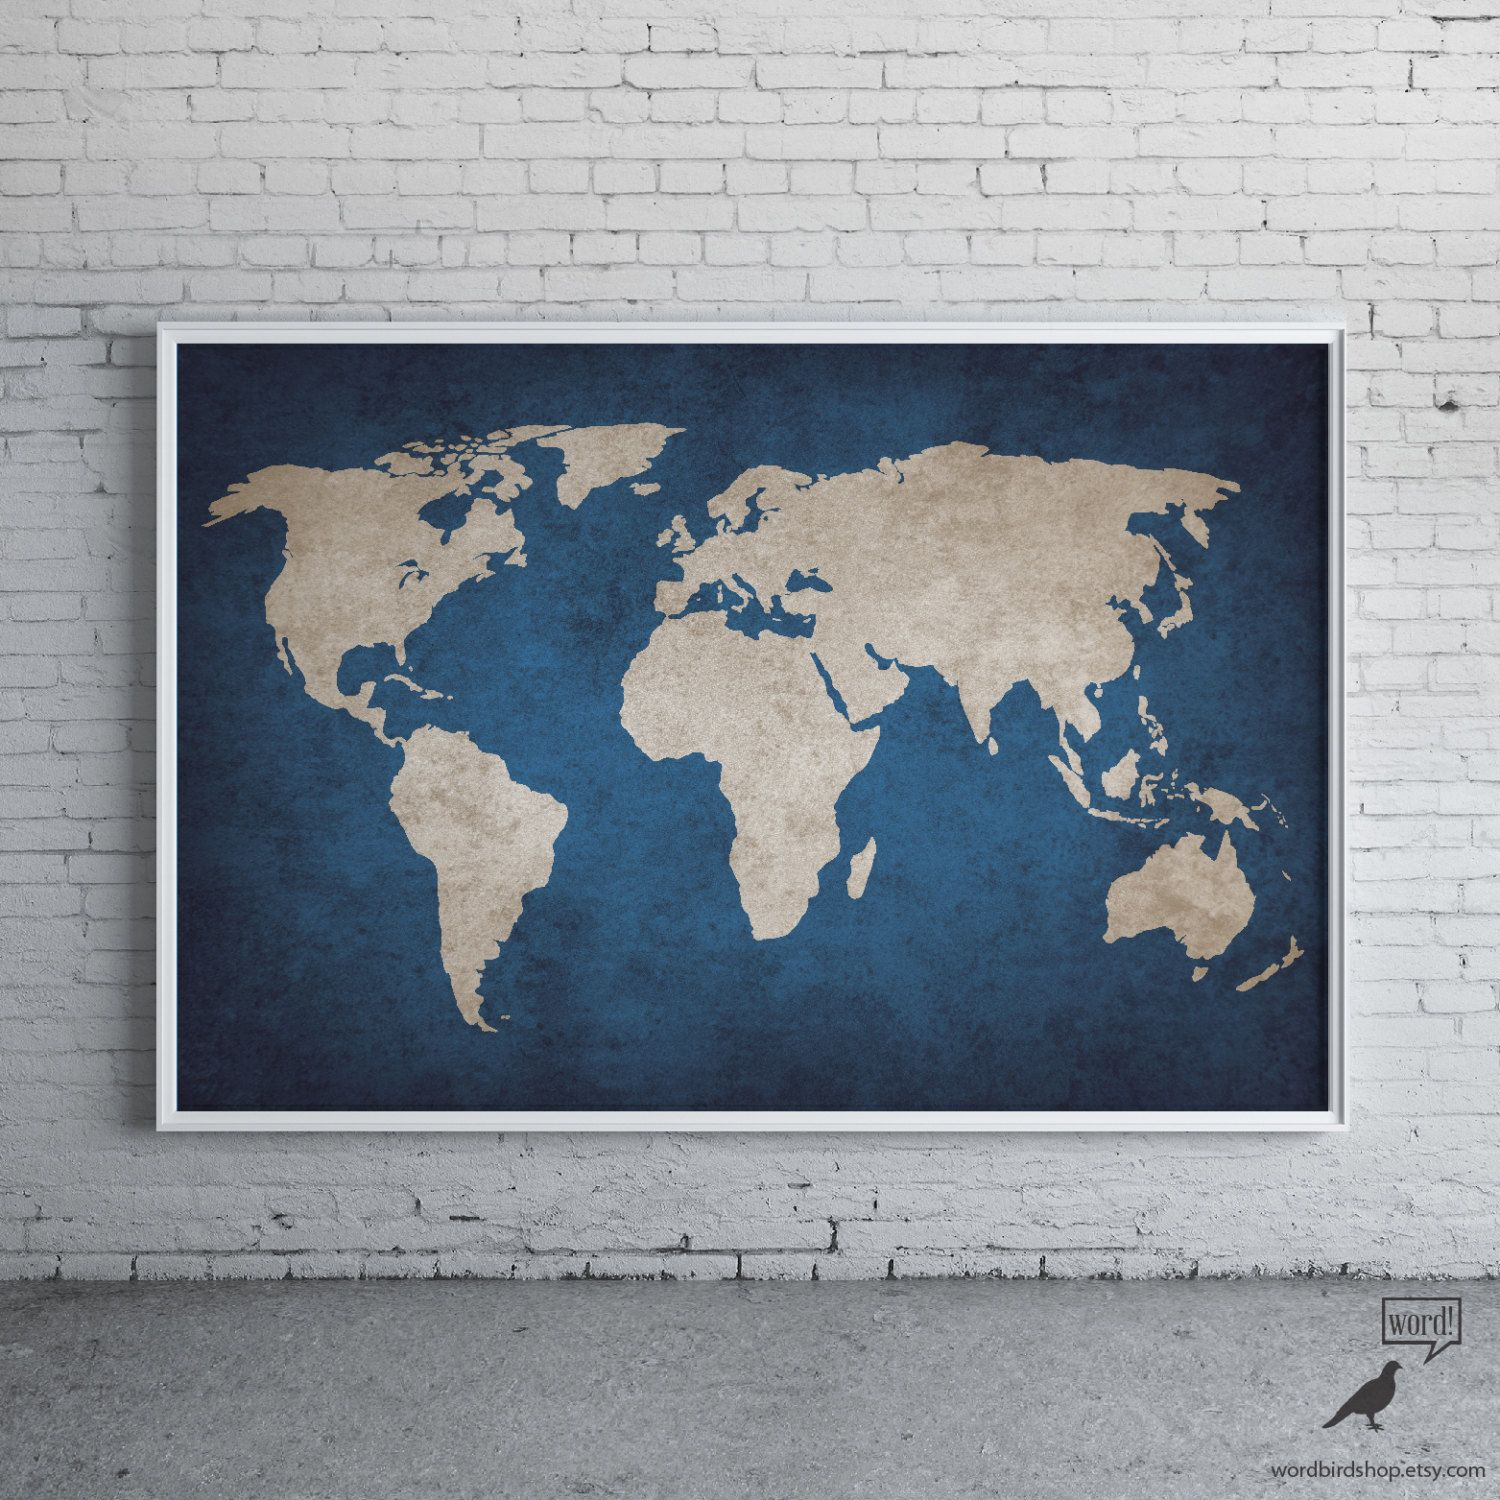 Navy blue rustic world map print old world map indigo cobalt blue navy blue rustic world map print old world map indigo cobalt gumiabroncs Gallery